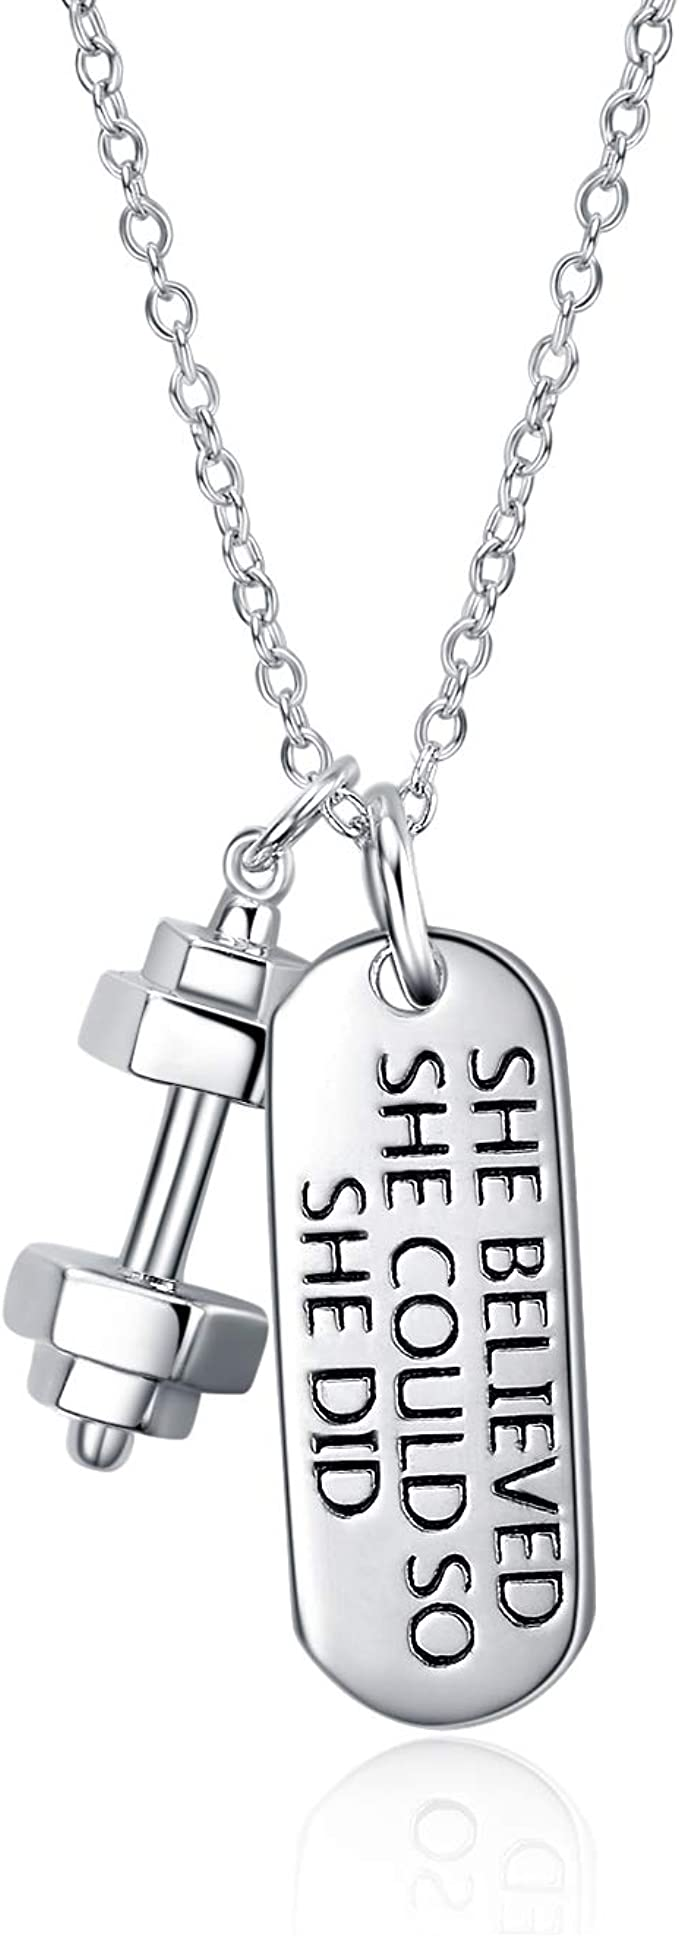 CROSSFIT KETTLEBELL Gym /'I Choose Strength/' STERLING SILVER BOX CHAIN Necklace